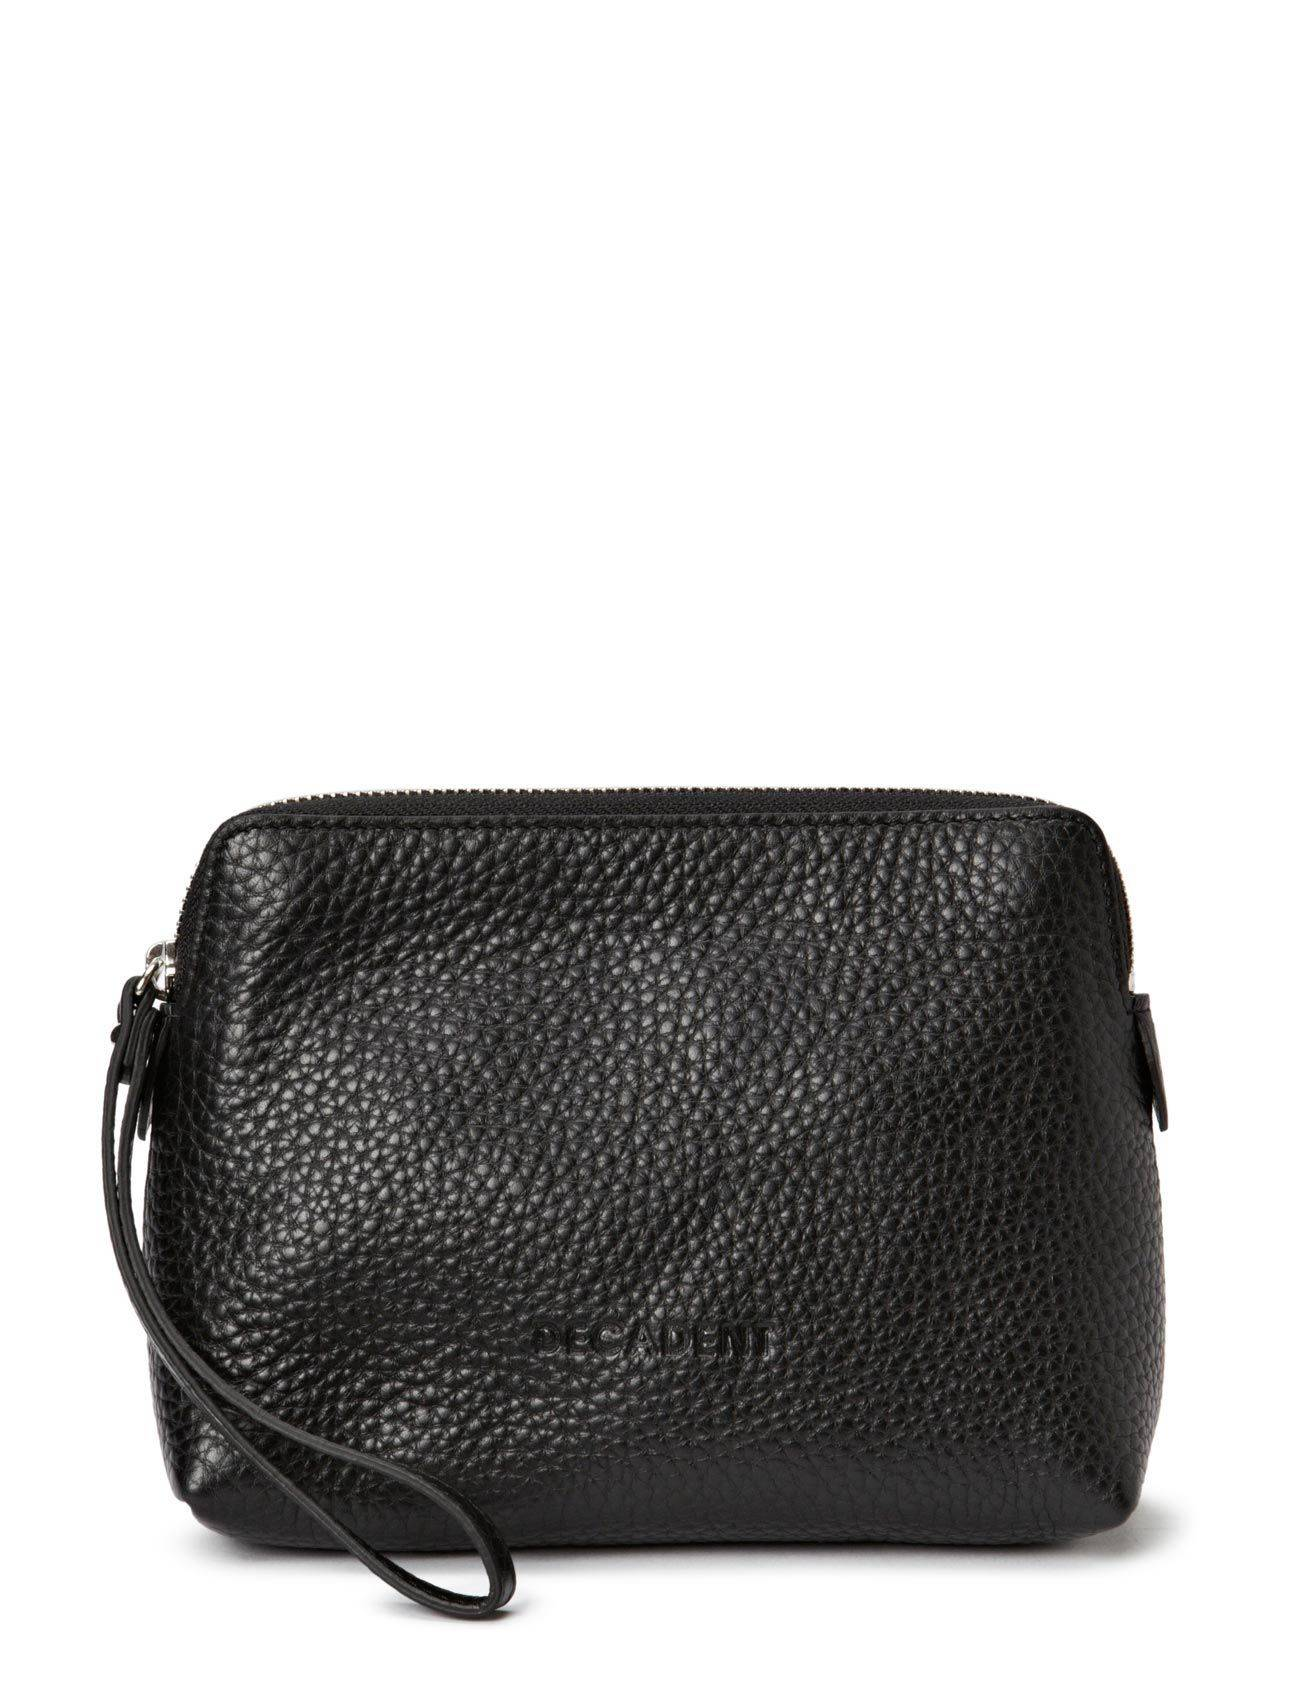 Decadent Hannah Makeup Purse